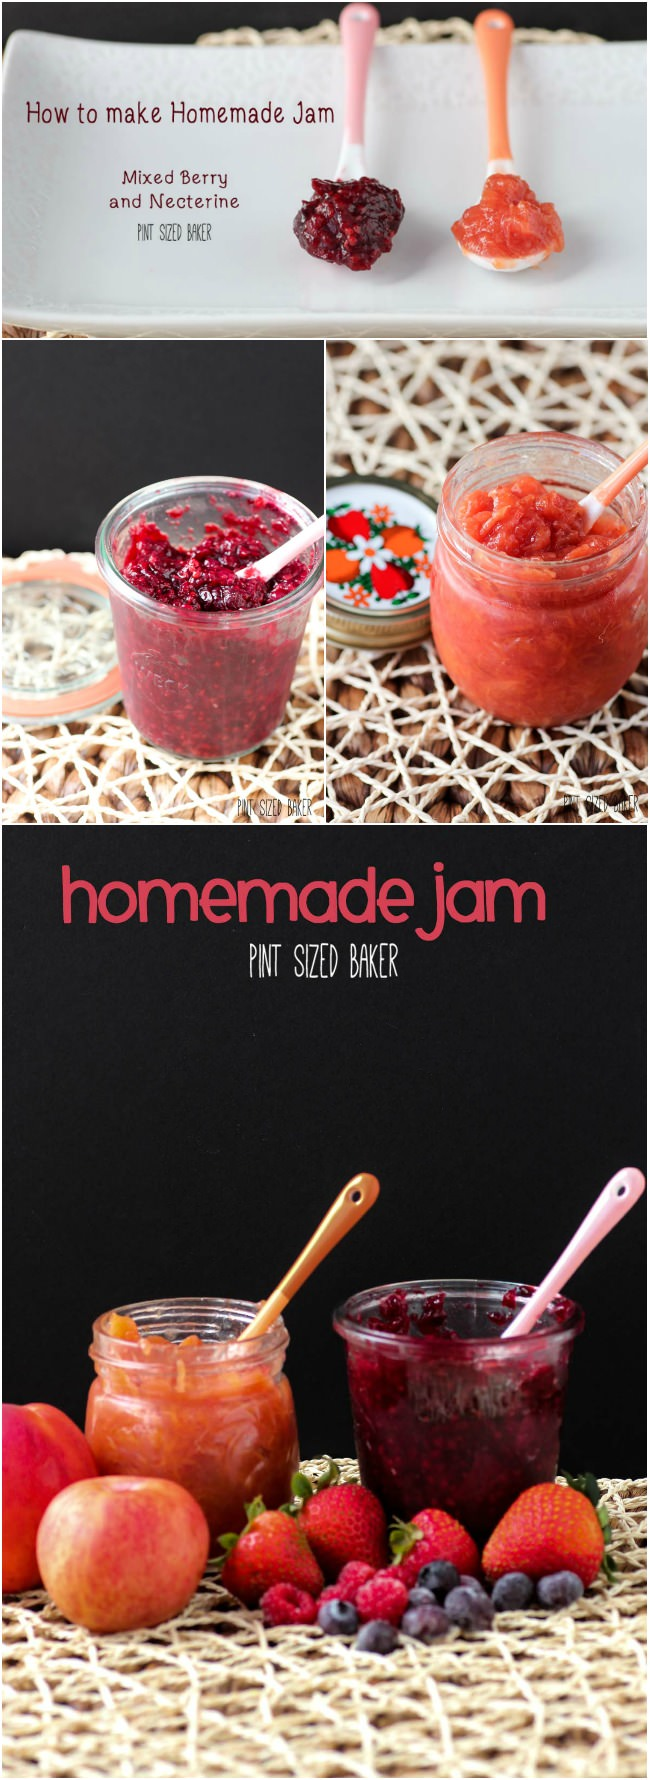 Making your own homemade jam with fresh, seasonal fruits is easy. I made mixed berries and a nectarine jam in an hour.